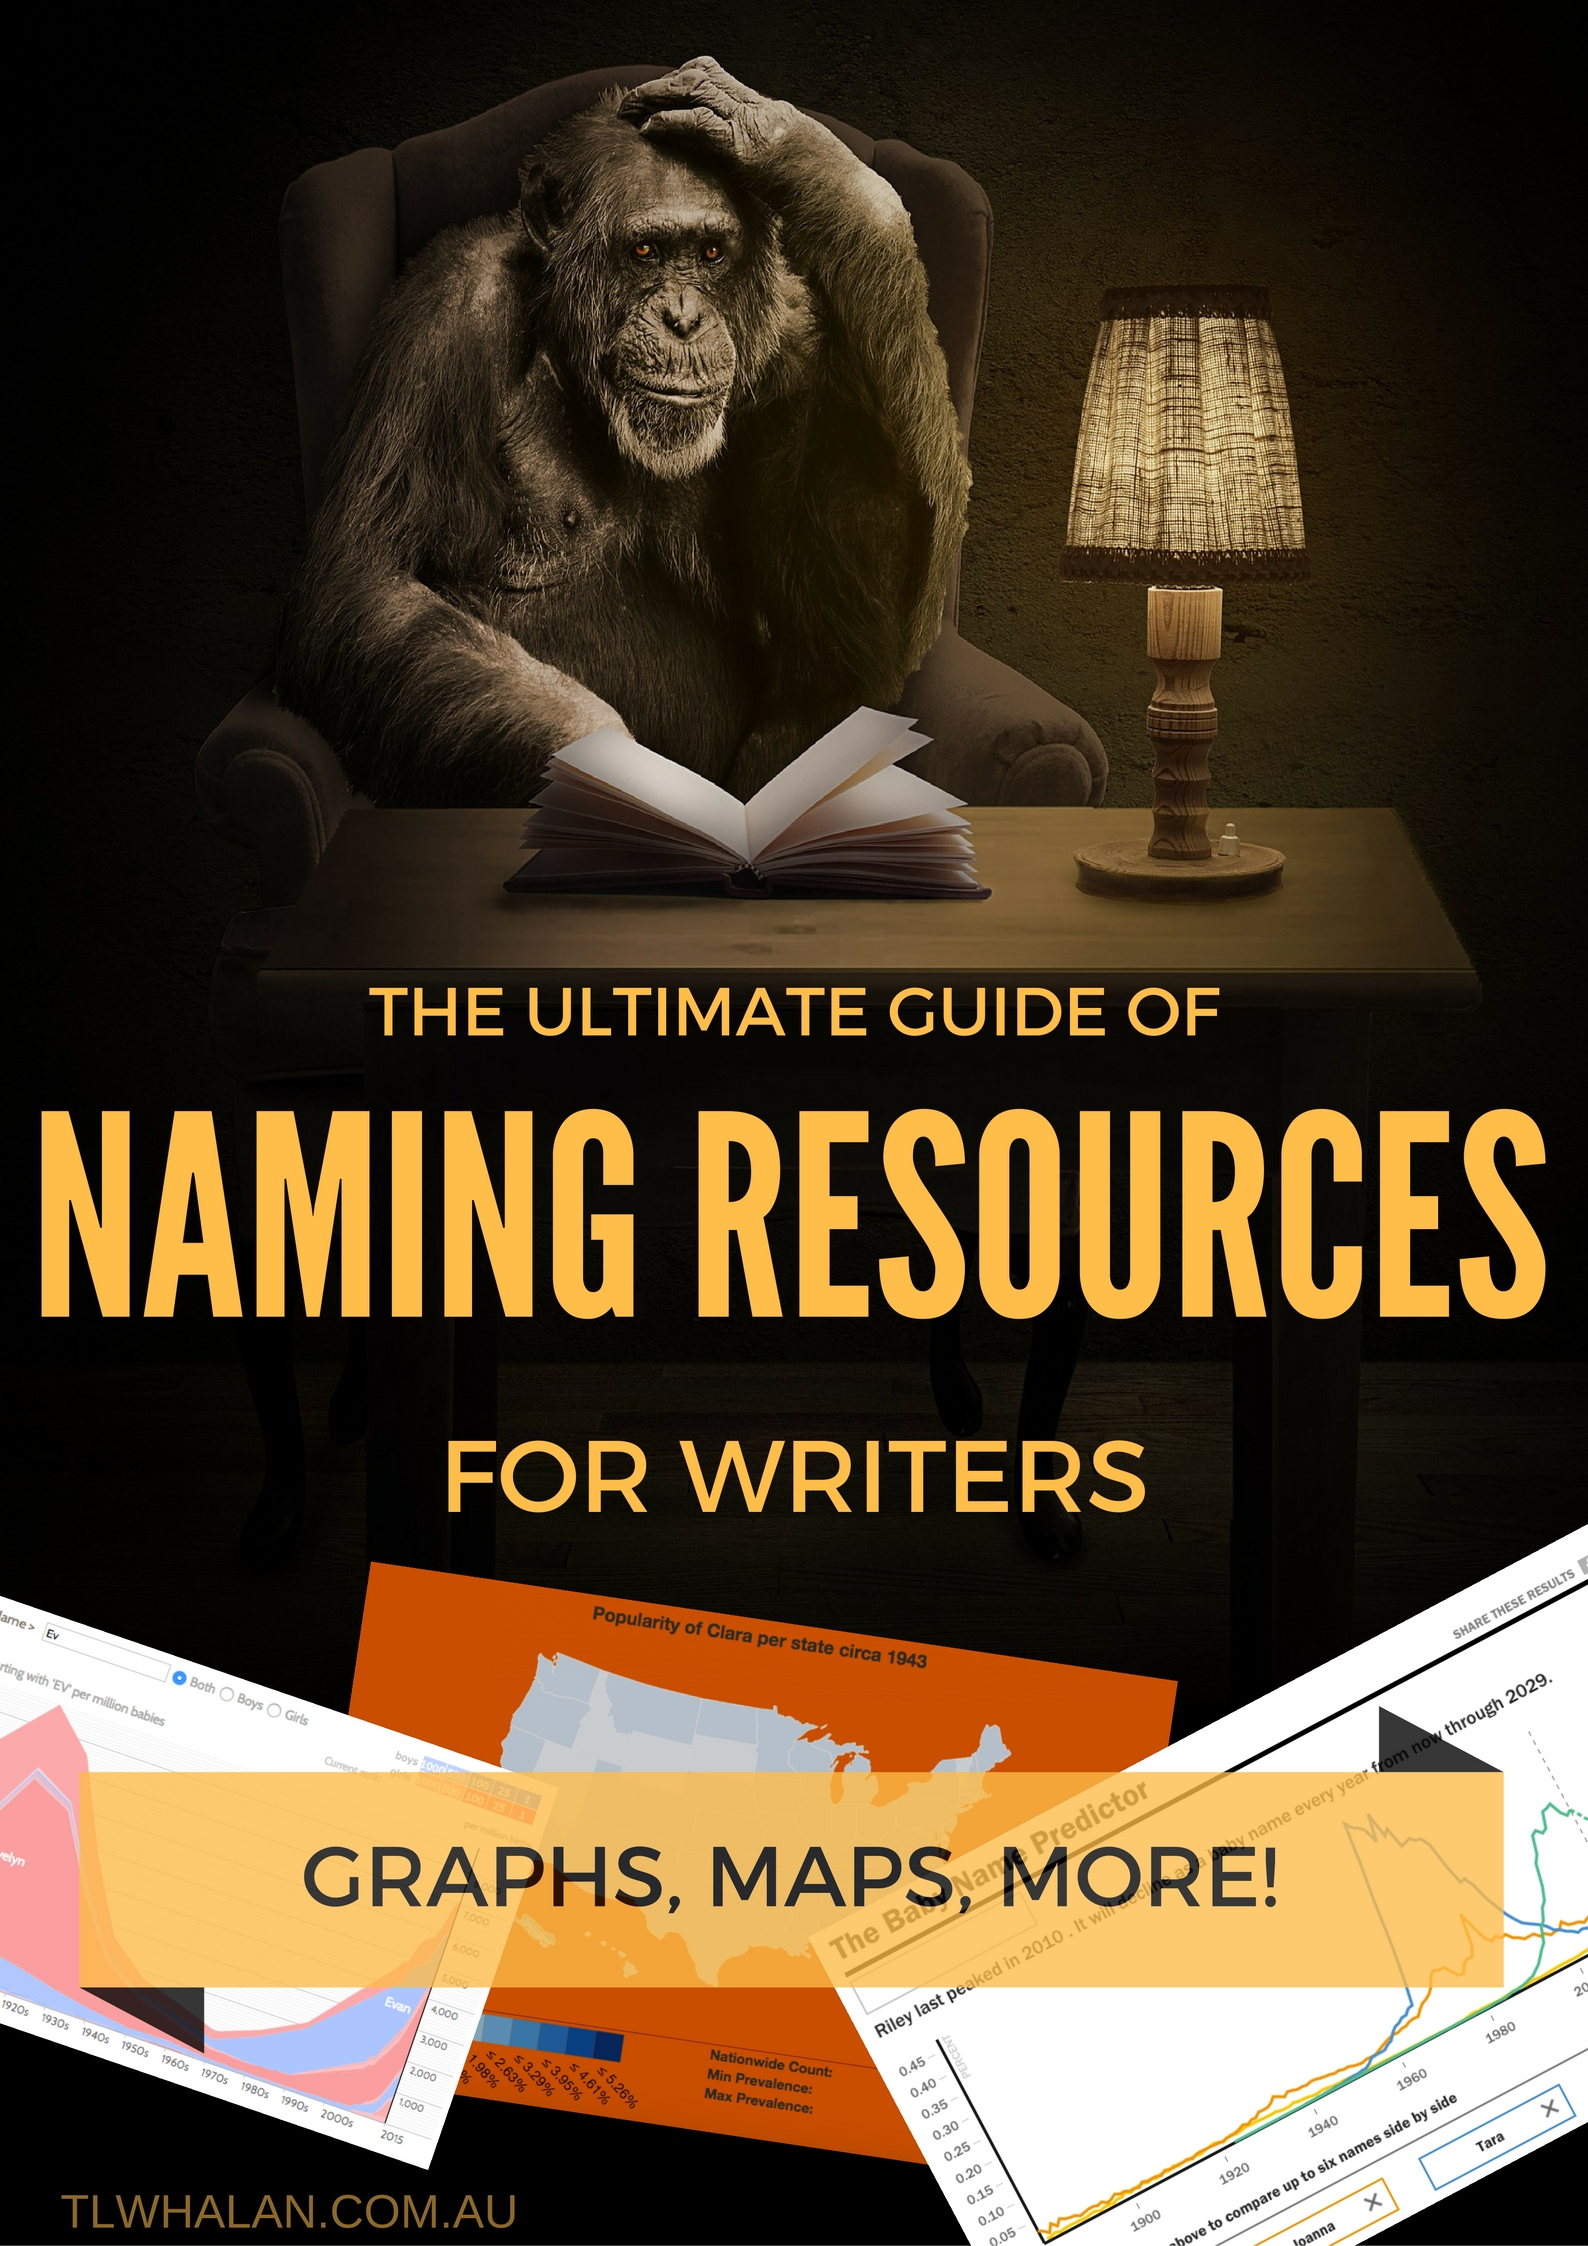 The ultimate guide of naming resources for writers.